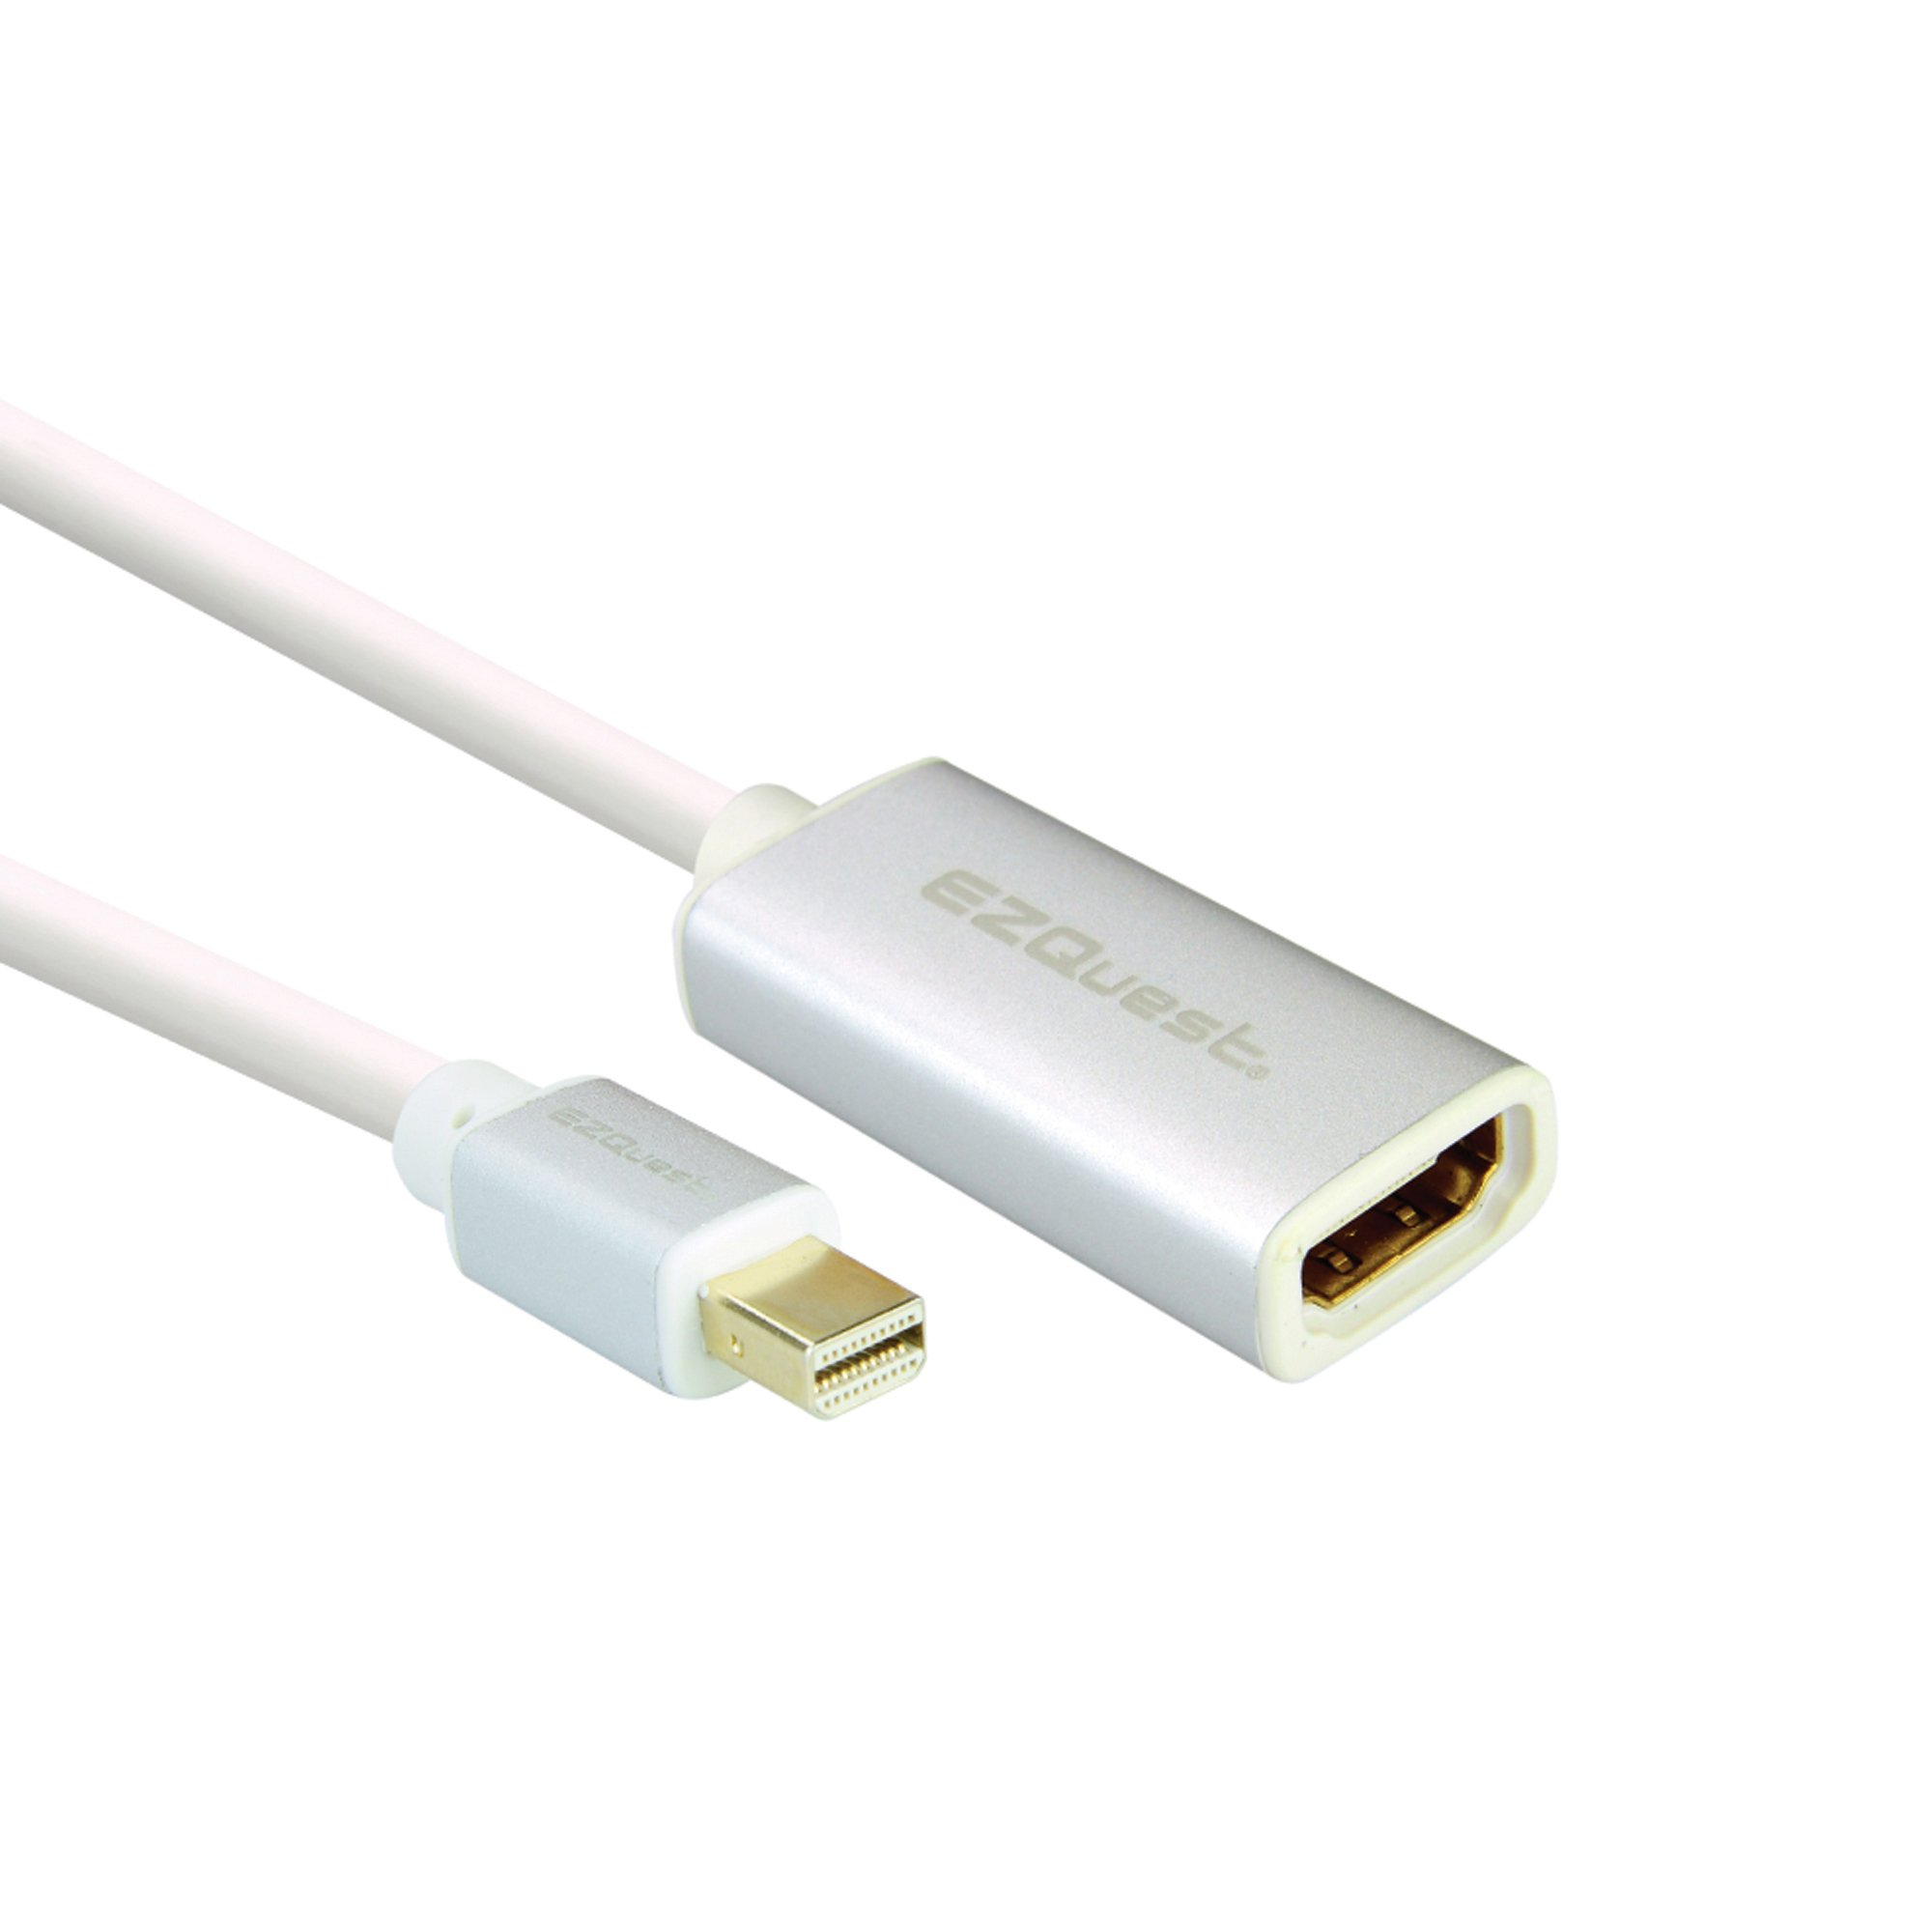 EZQuest Mini Display Port to HDMI Adapter with Aluminum Sleeves (X40094)